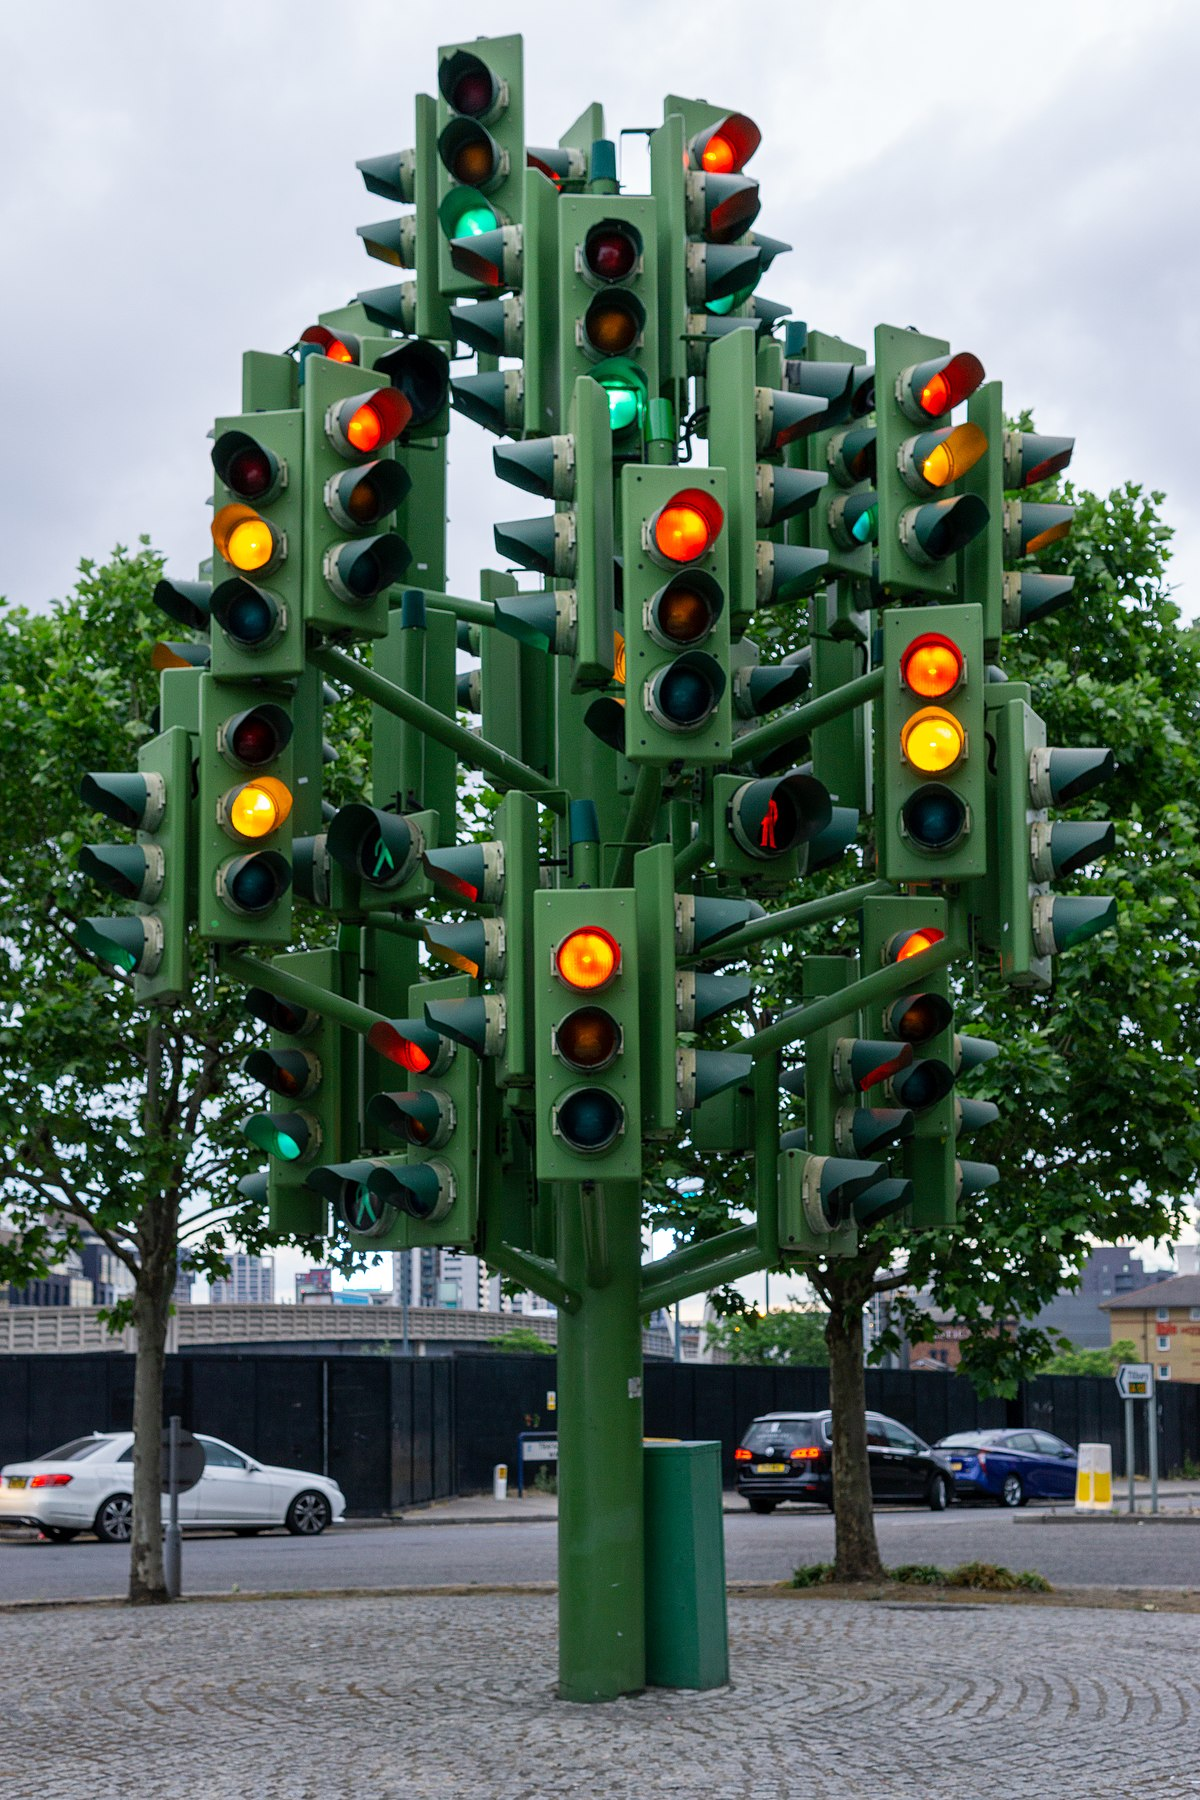 post with a multitude of traffic lights on it